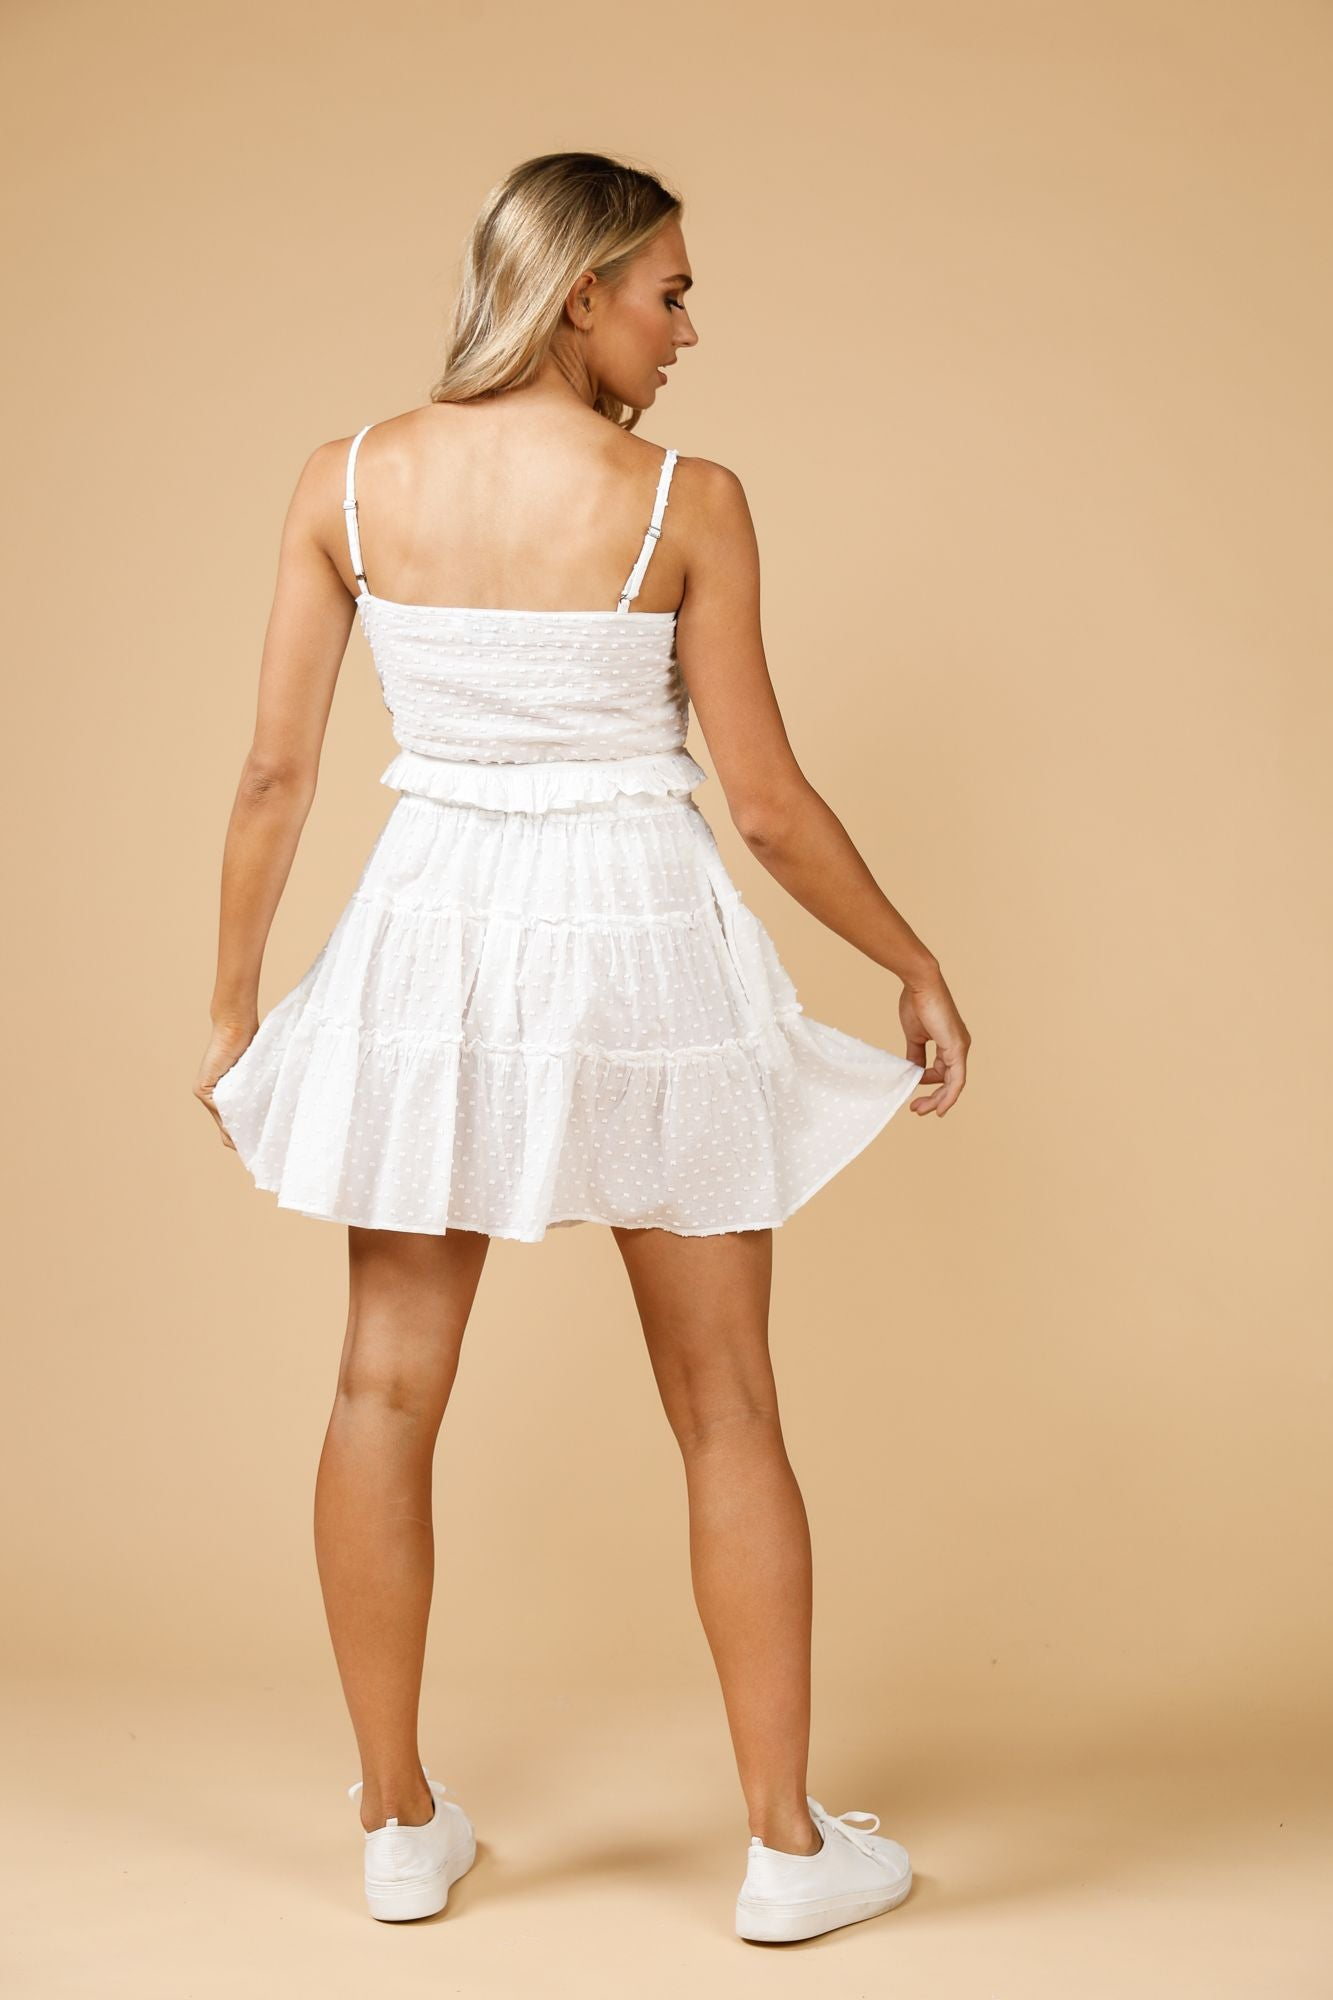 White Dobby Piper Mini Skirt - by Daisy Says currently available from Rawspice Boutique.